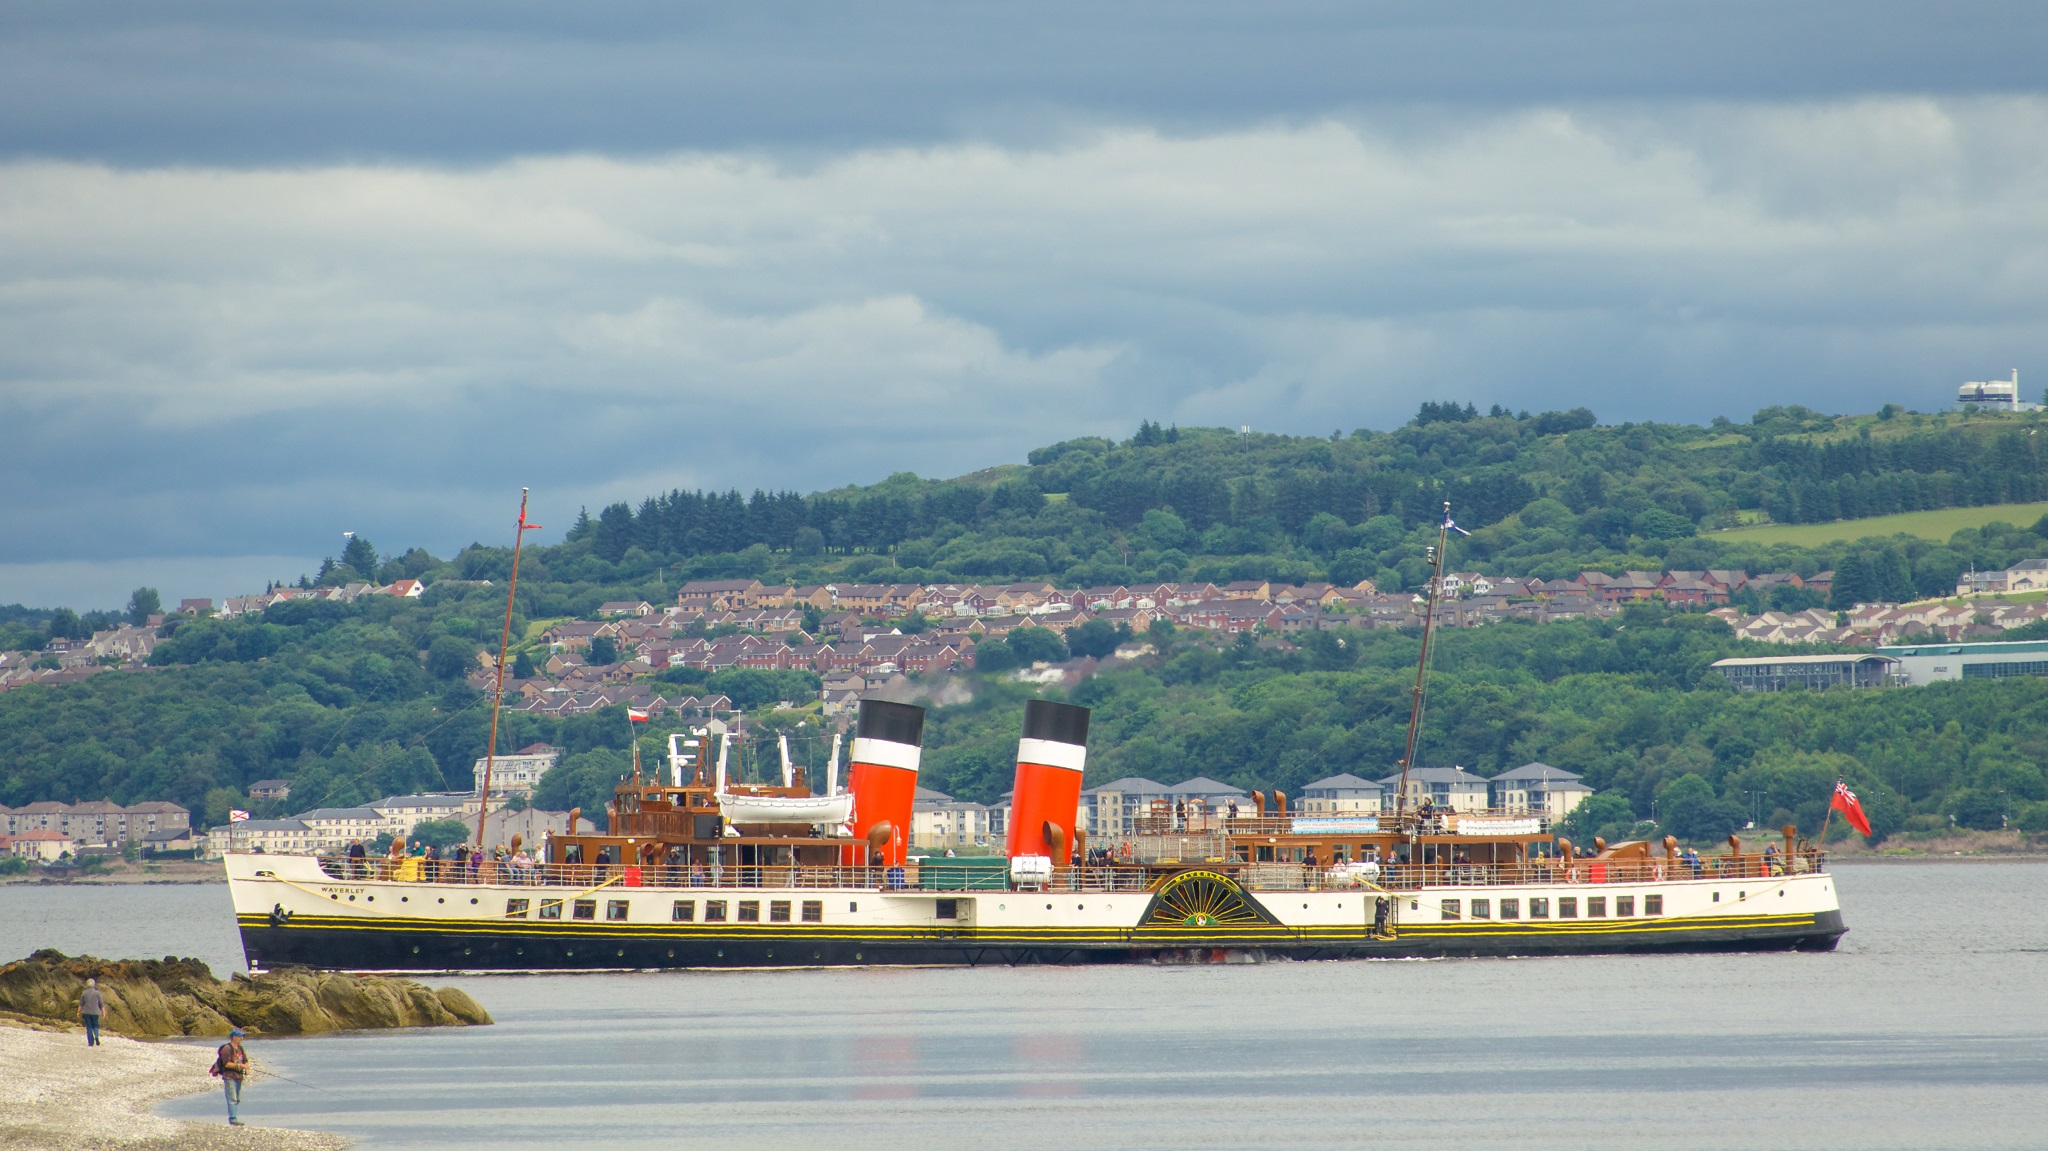 Waverley on the Clyde